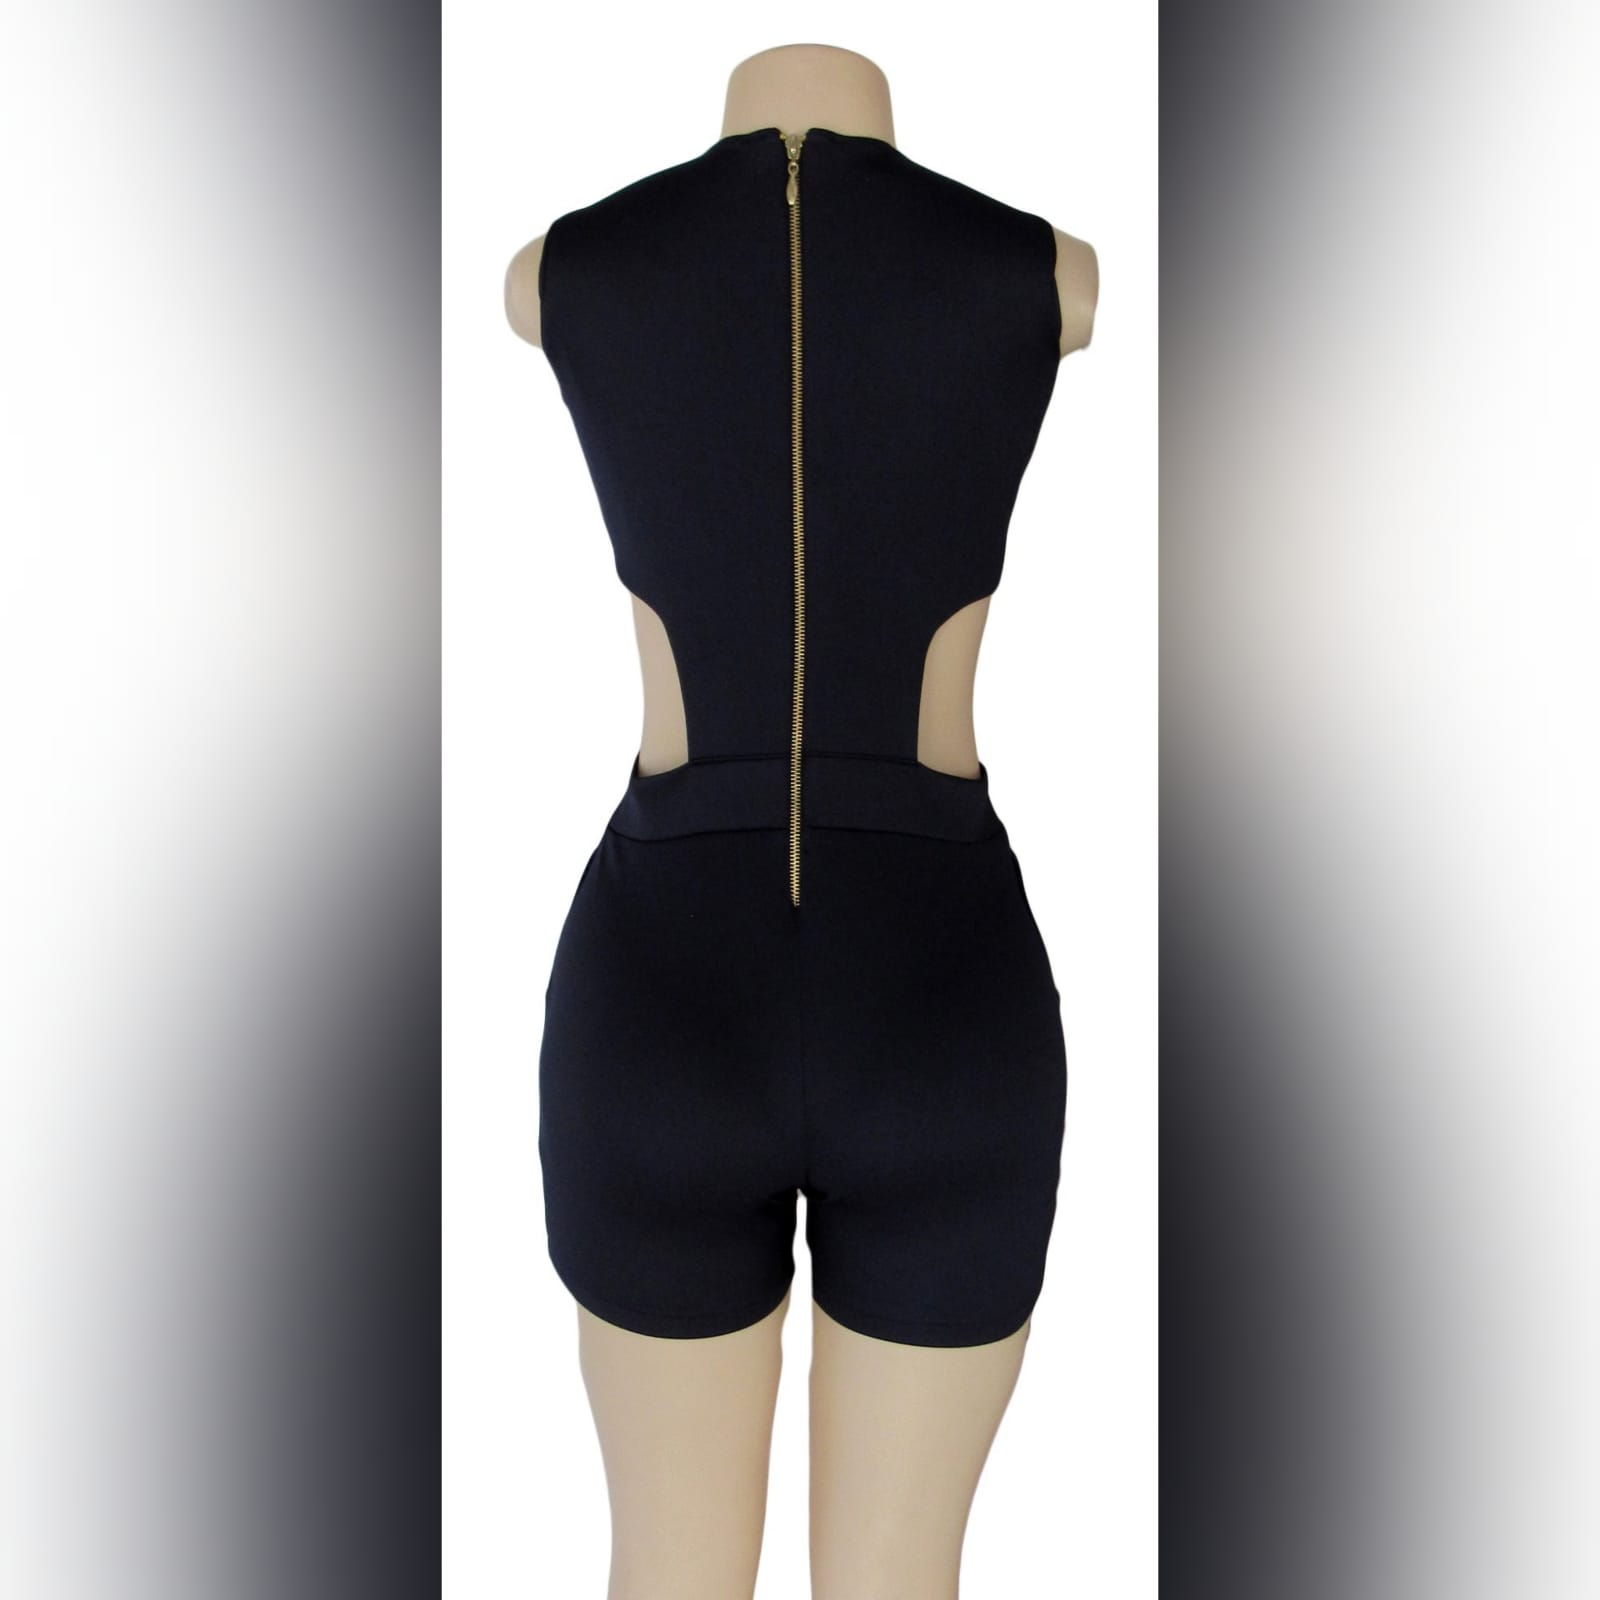 Navy blue smart casual bodysuit 3 navy blue smart casual bodysuit, with side tummy openings, v neckline detailed with lace-up detail, and back with a gold zipper.